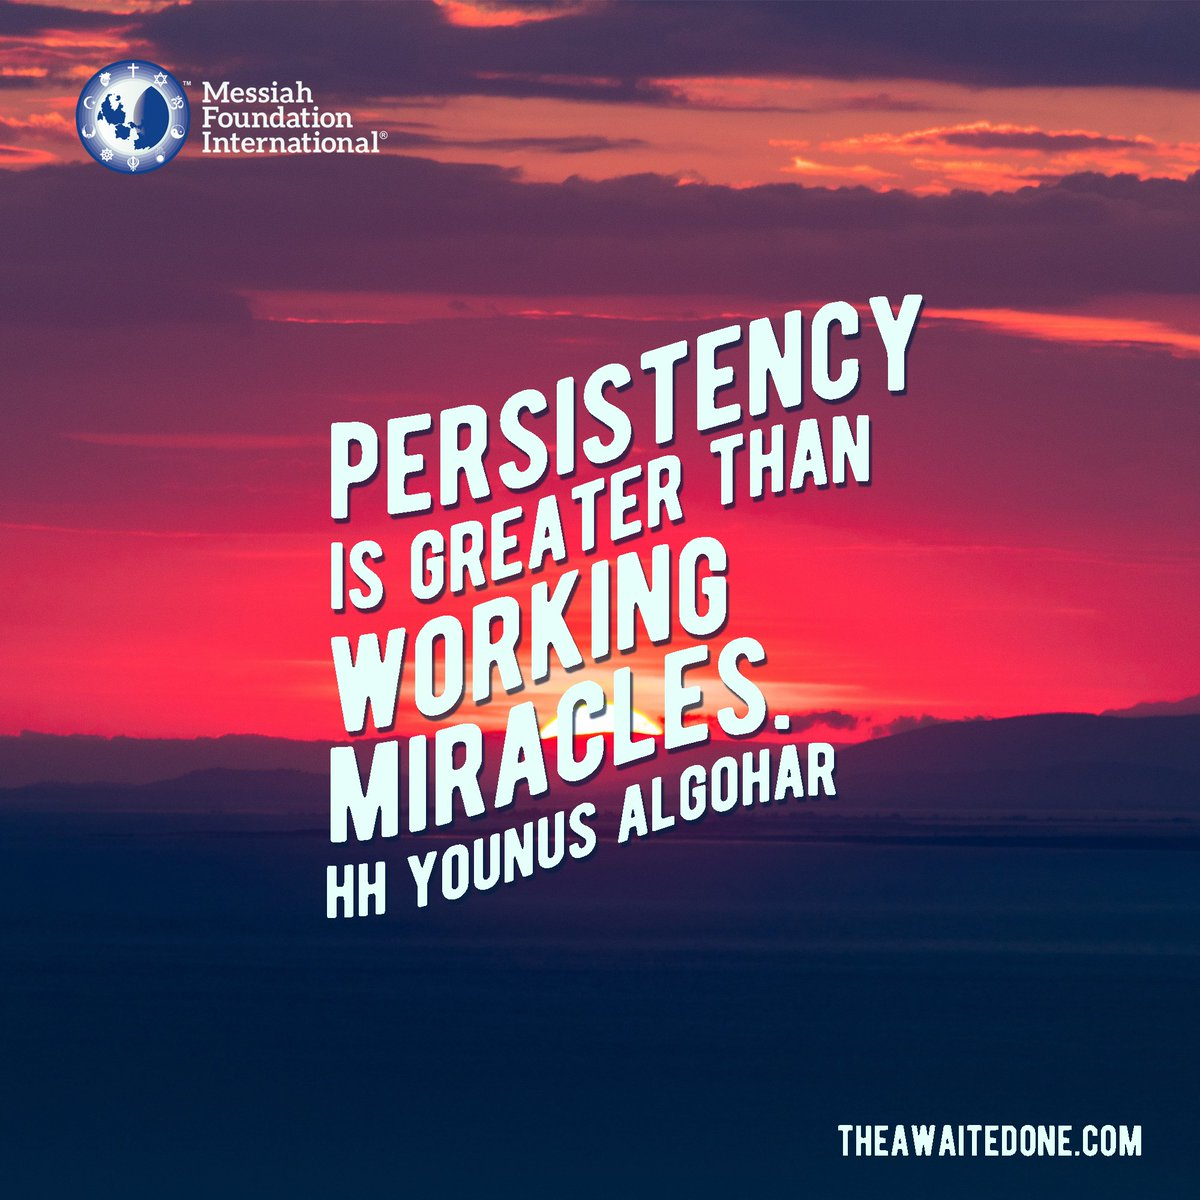 #QuoteoftheDay '#Persistency is #greater than #working #miracles.' - HH @YounusAlGohar<br>http://pic.twitter.com/lXws7Xgi4c